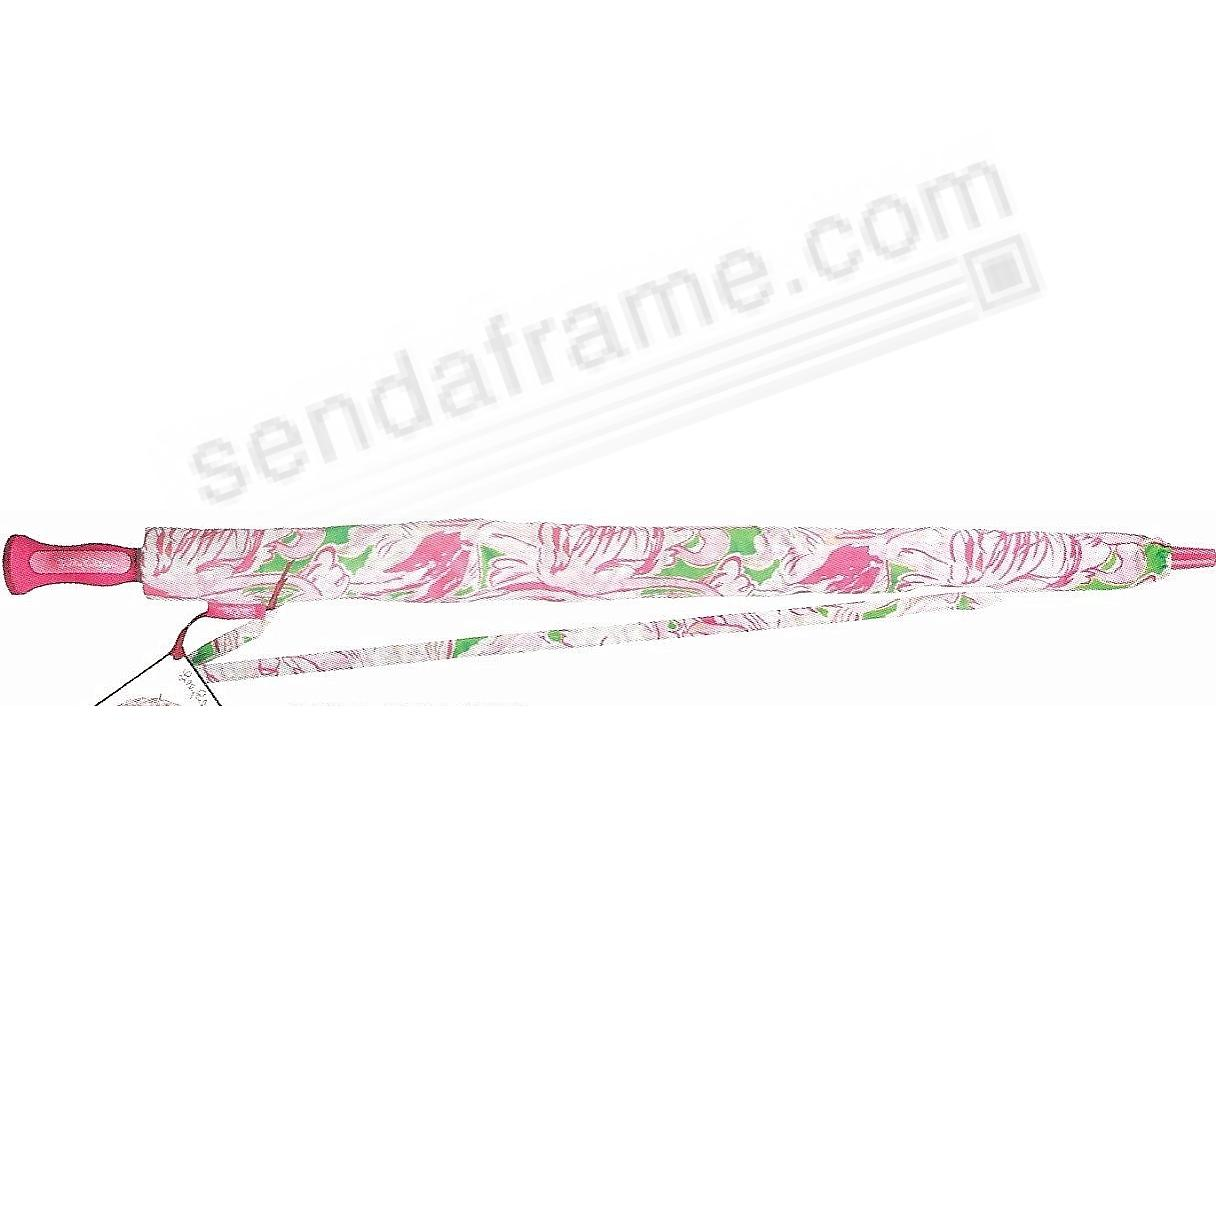 The Original Lilly Pulitzer® PINK COLONY GOLF Umbrella